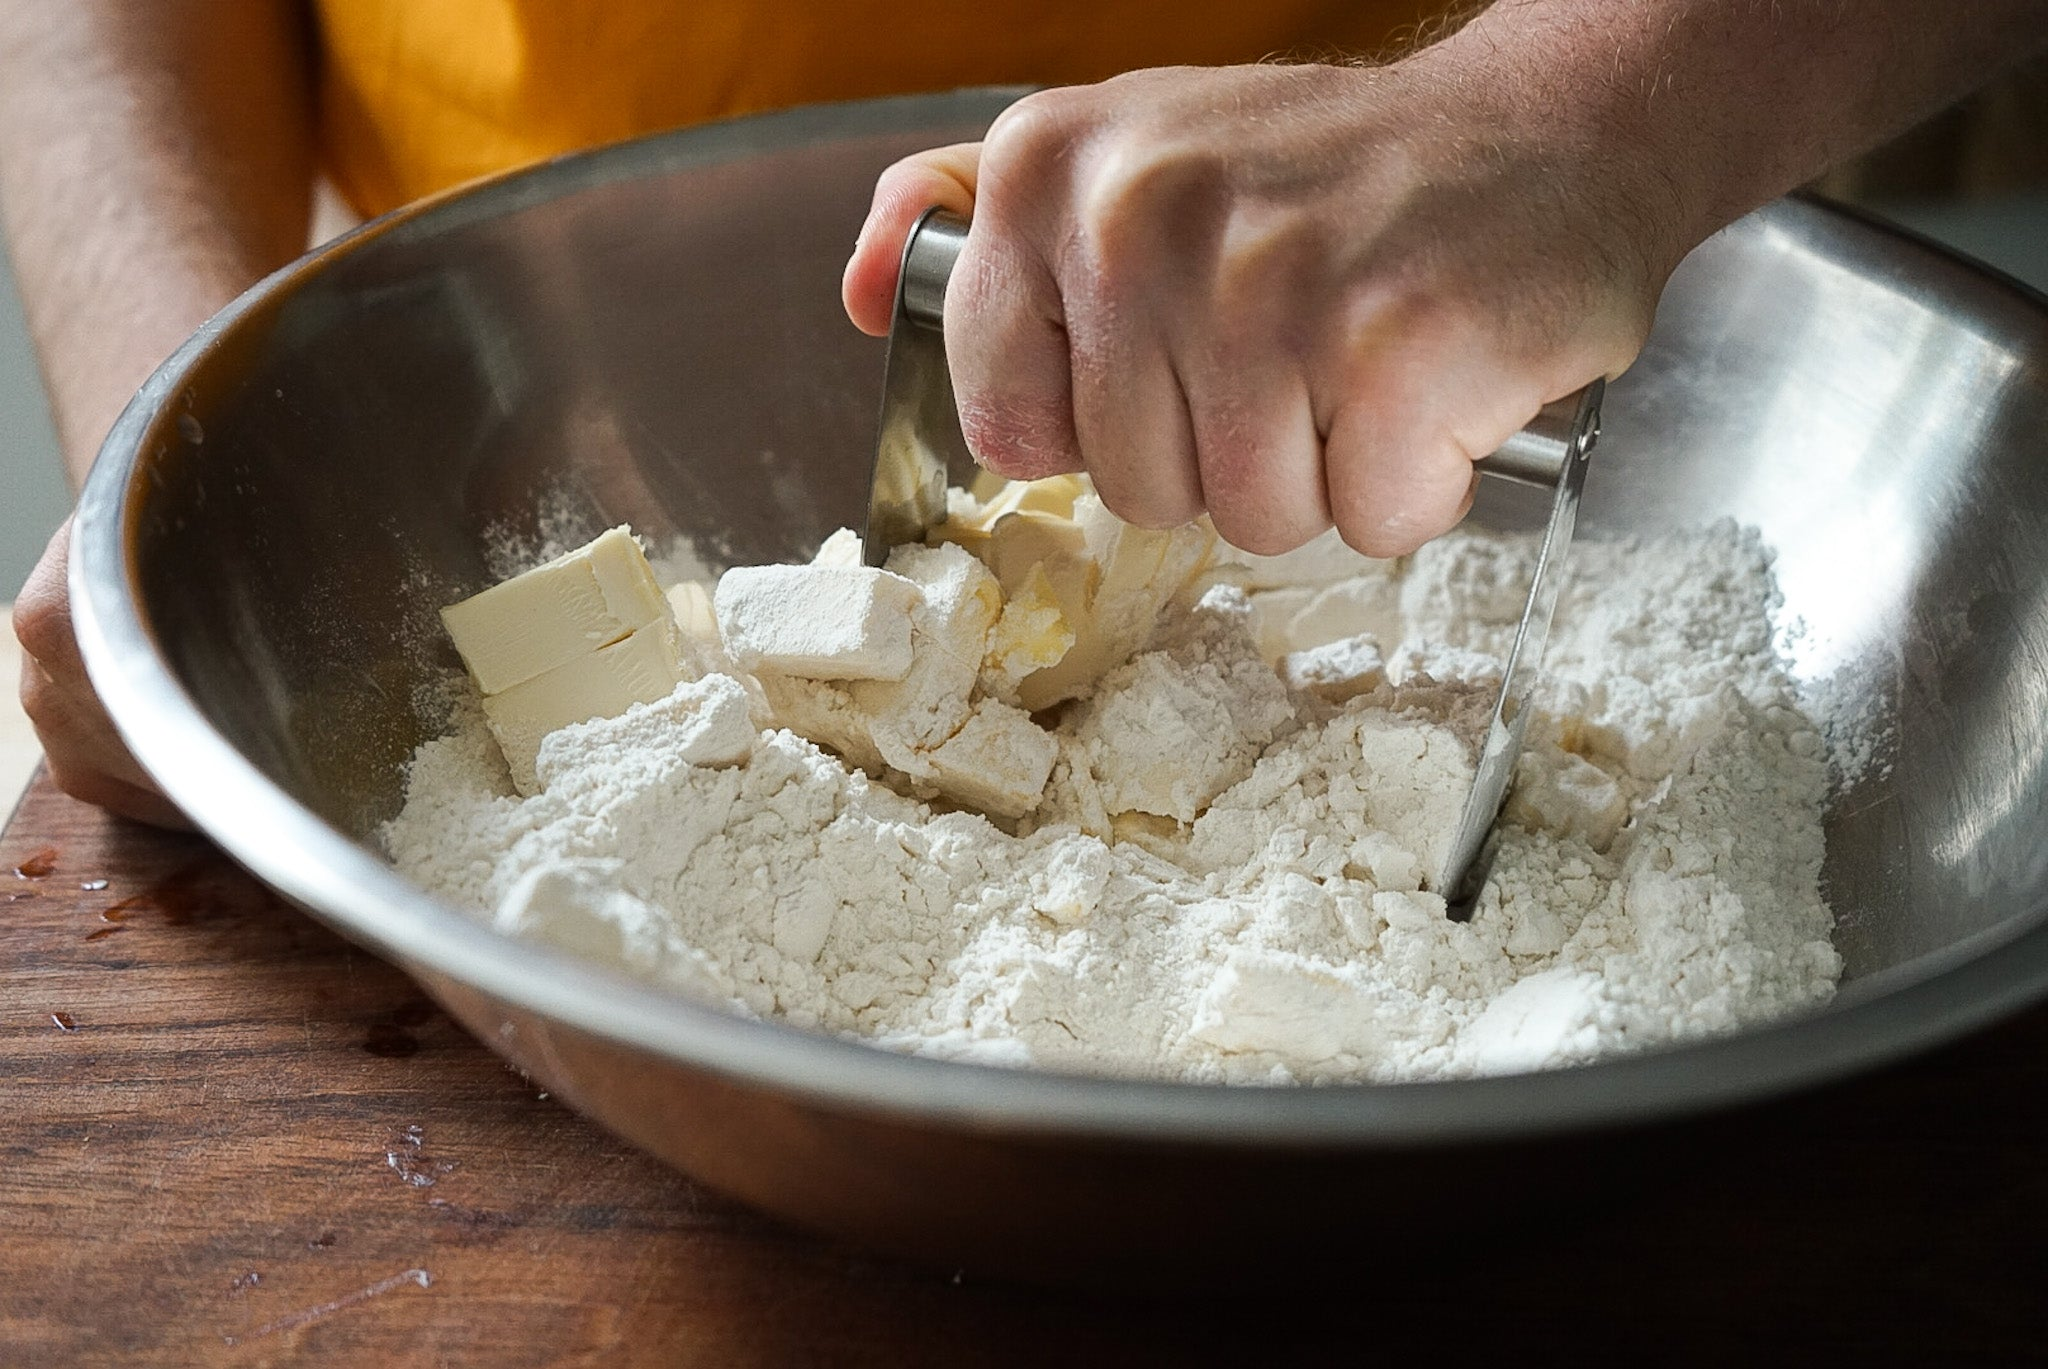 hand mixing bowl crushing butter sticks with flour for pie dough